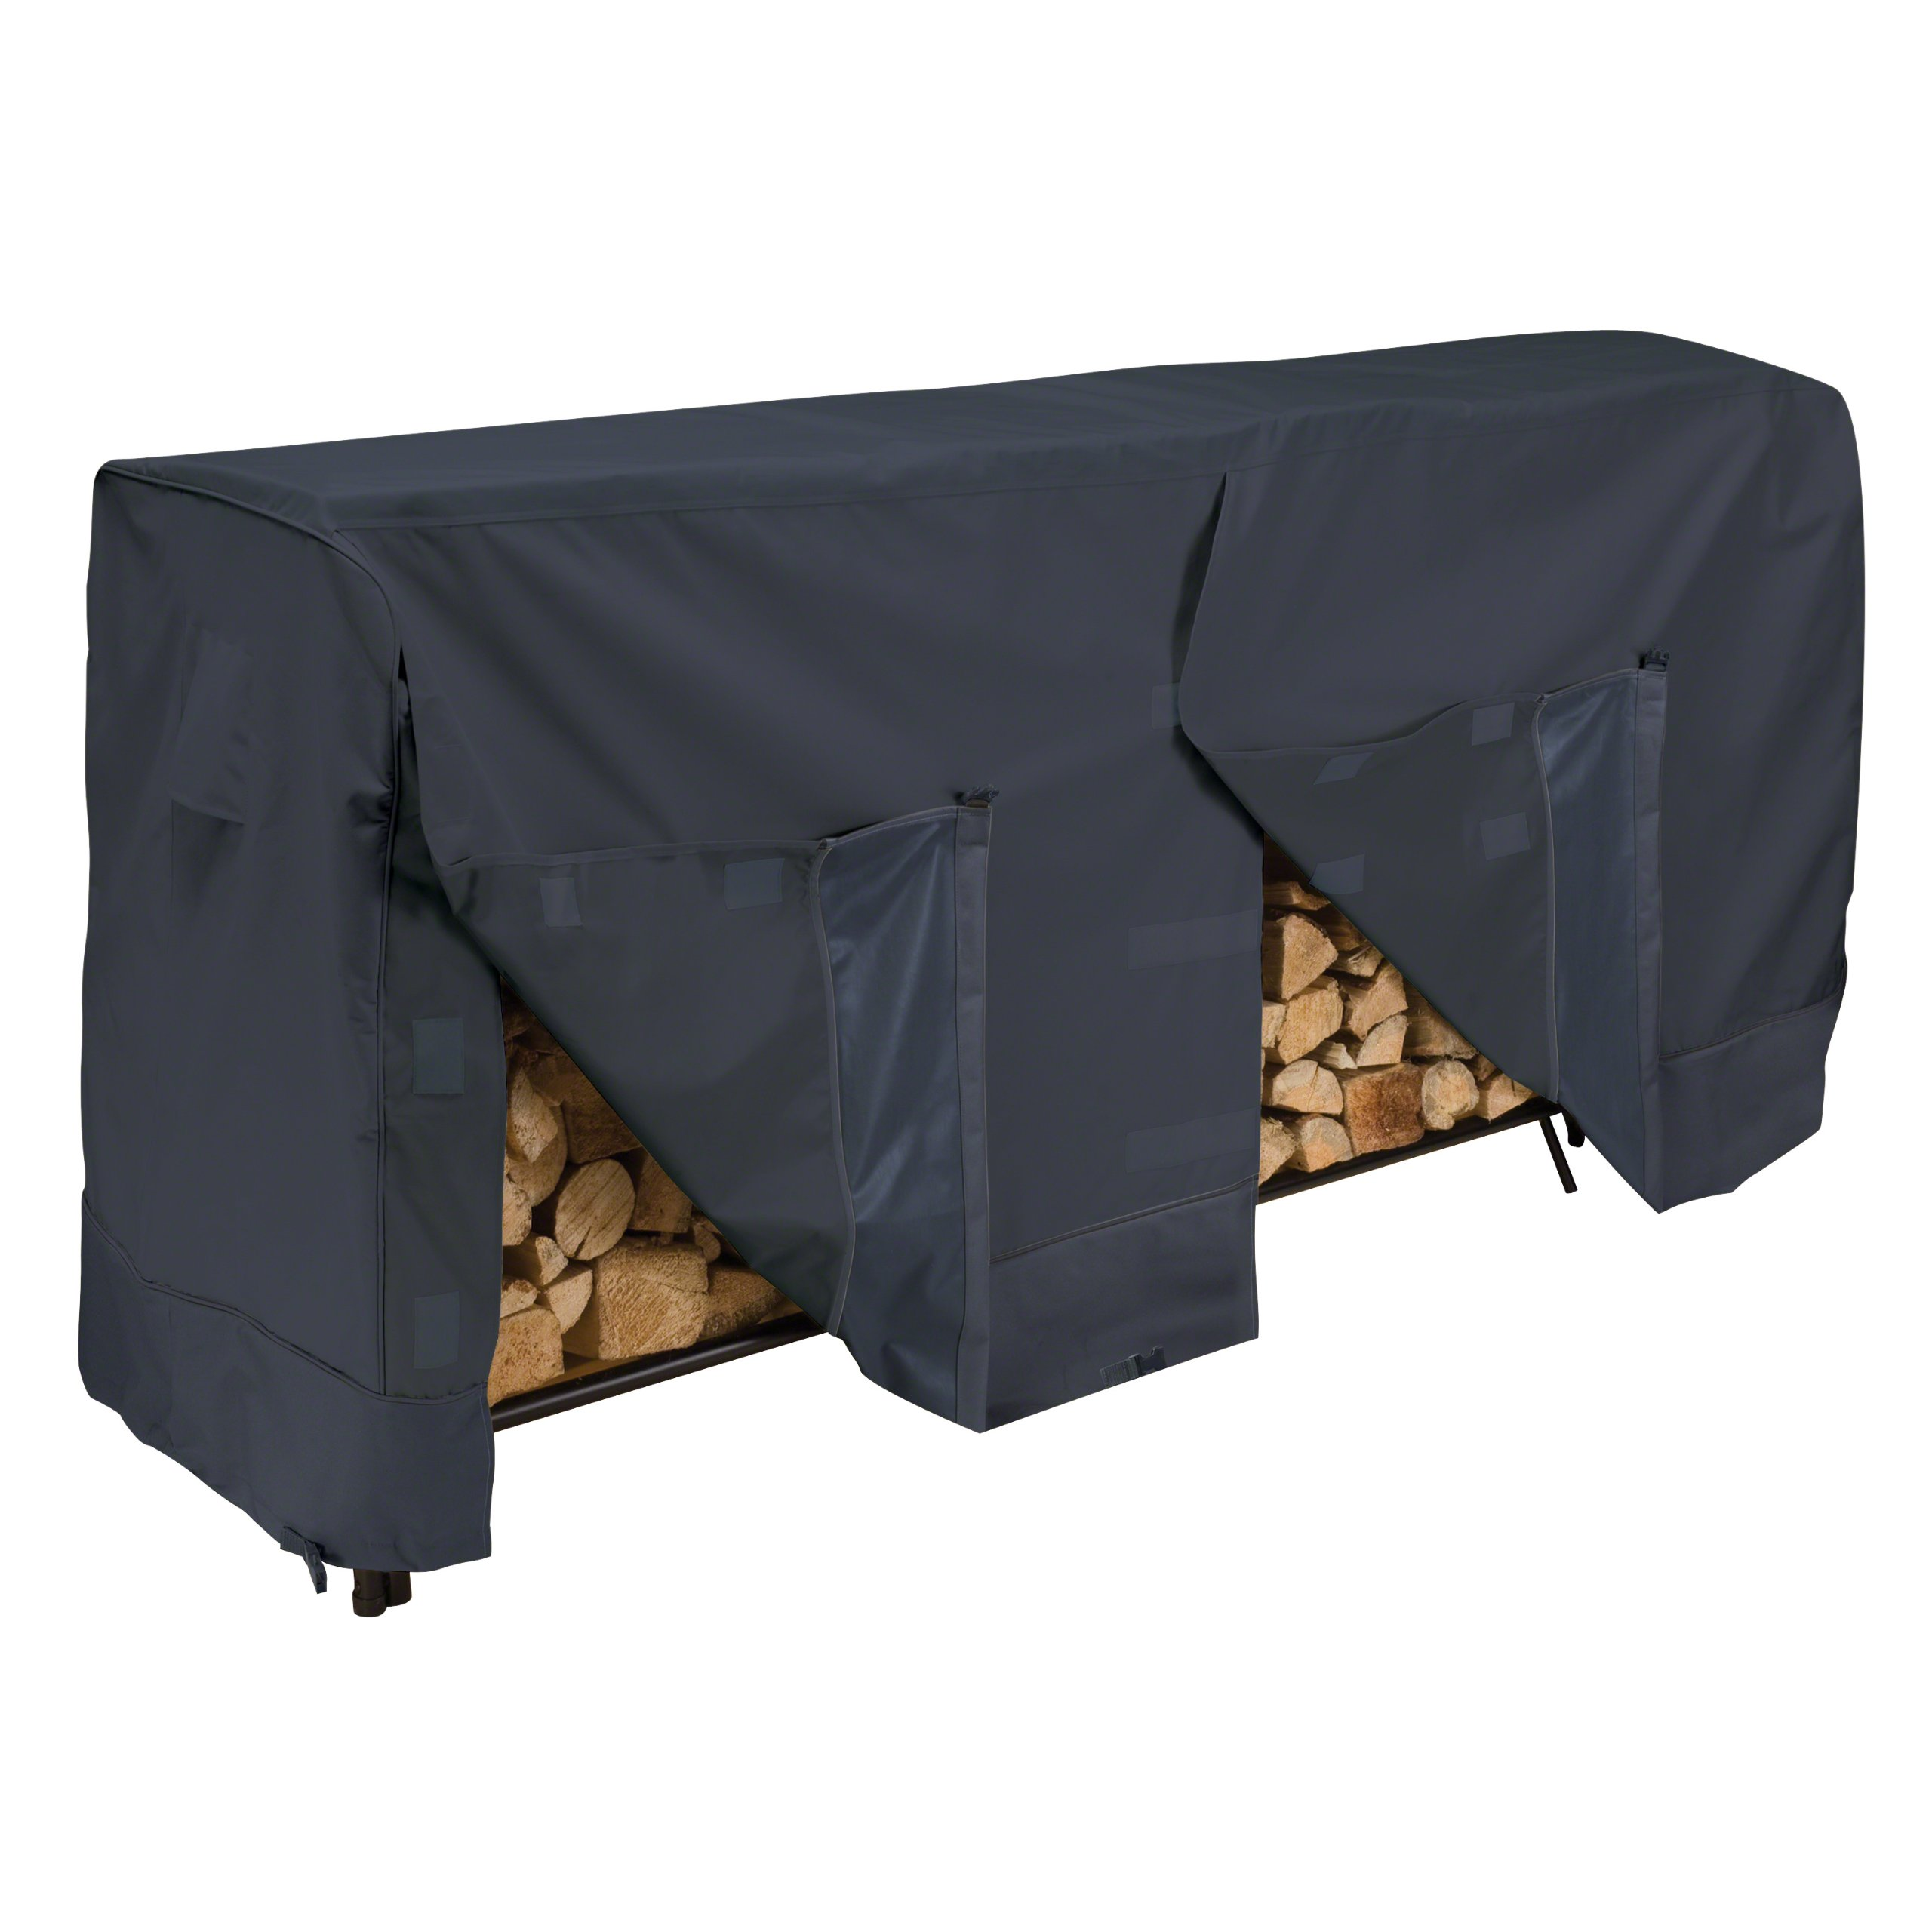 Classic Accessories 52-069-030401-00 Log Rack Cover, 8-Feet, 8 ft, Black by Classic Accessories